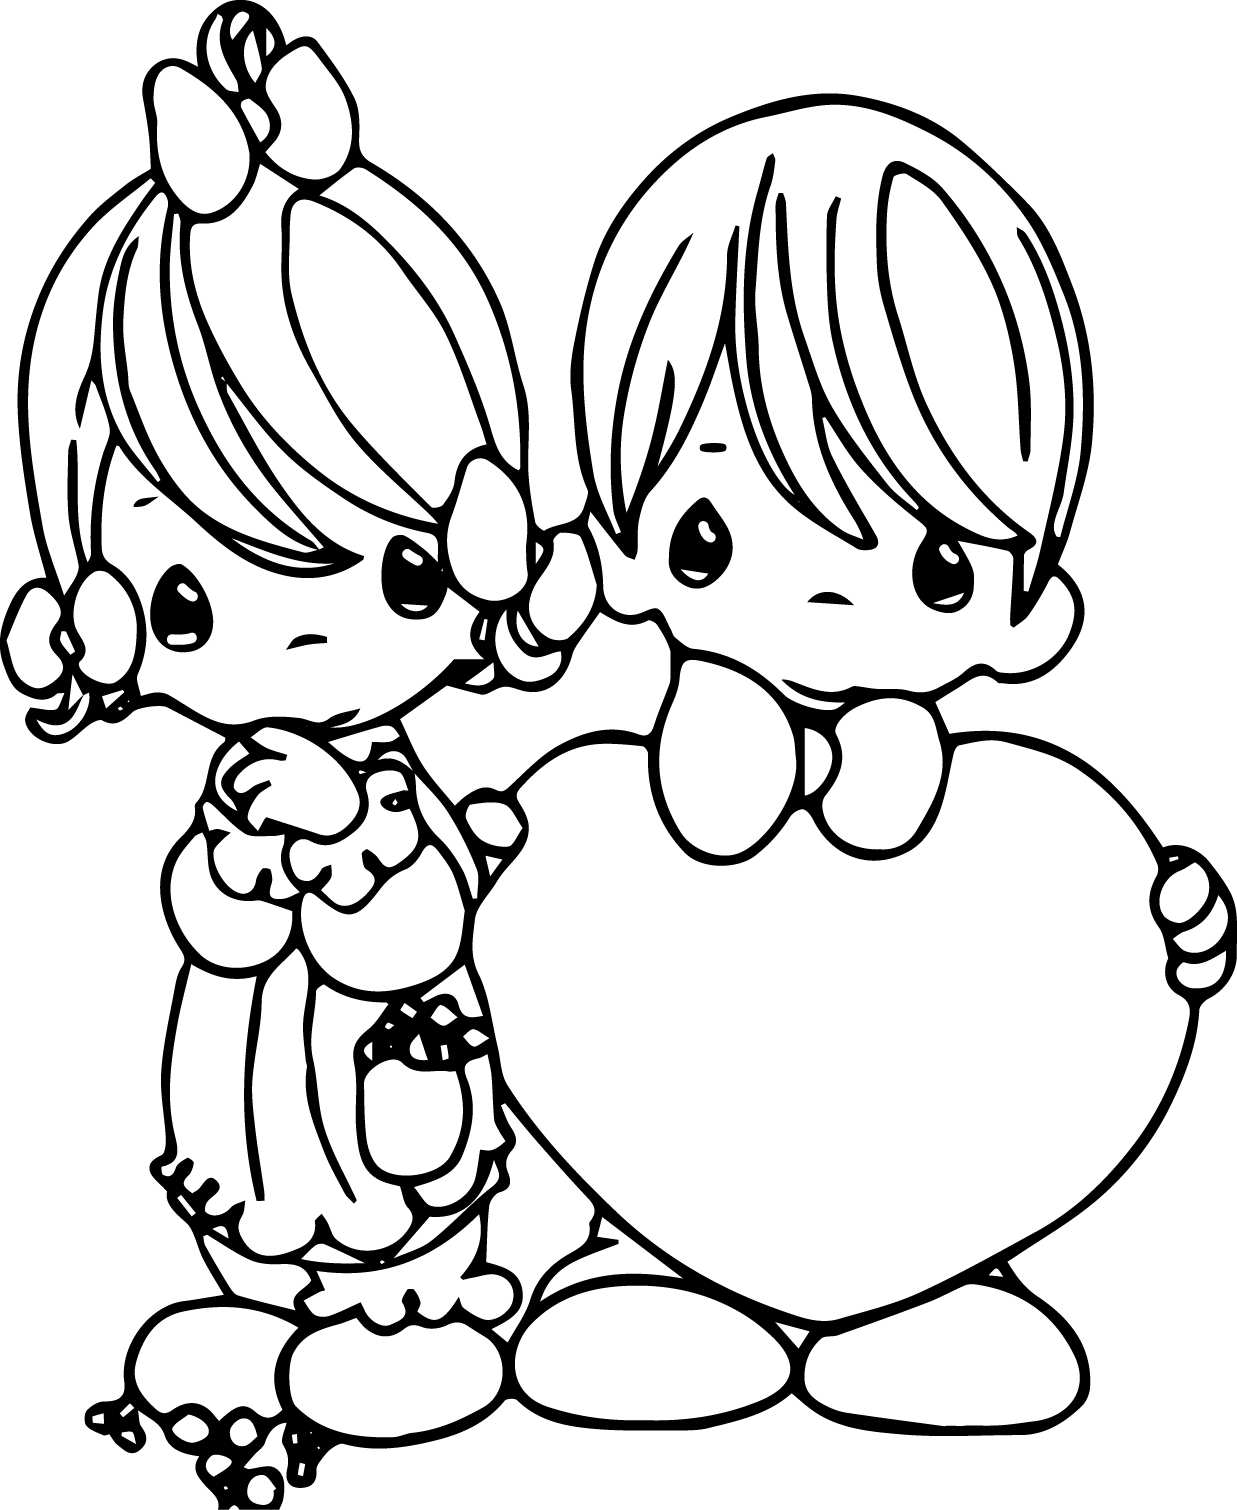 1237x1510 Coloring Pages Precious Moments Tags Precious Moments Coloring